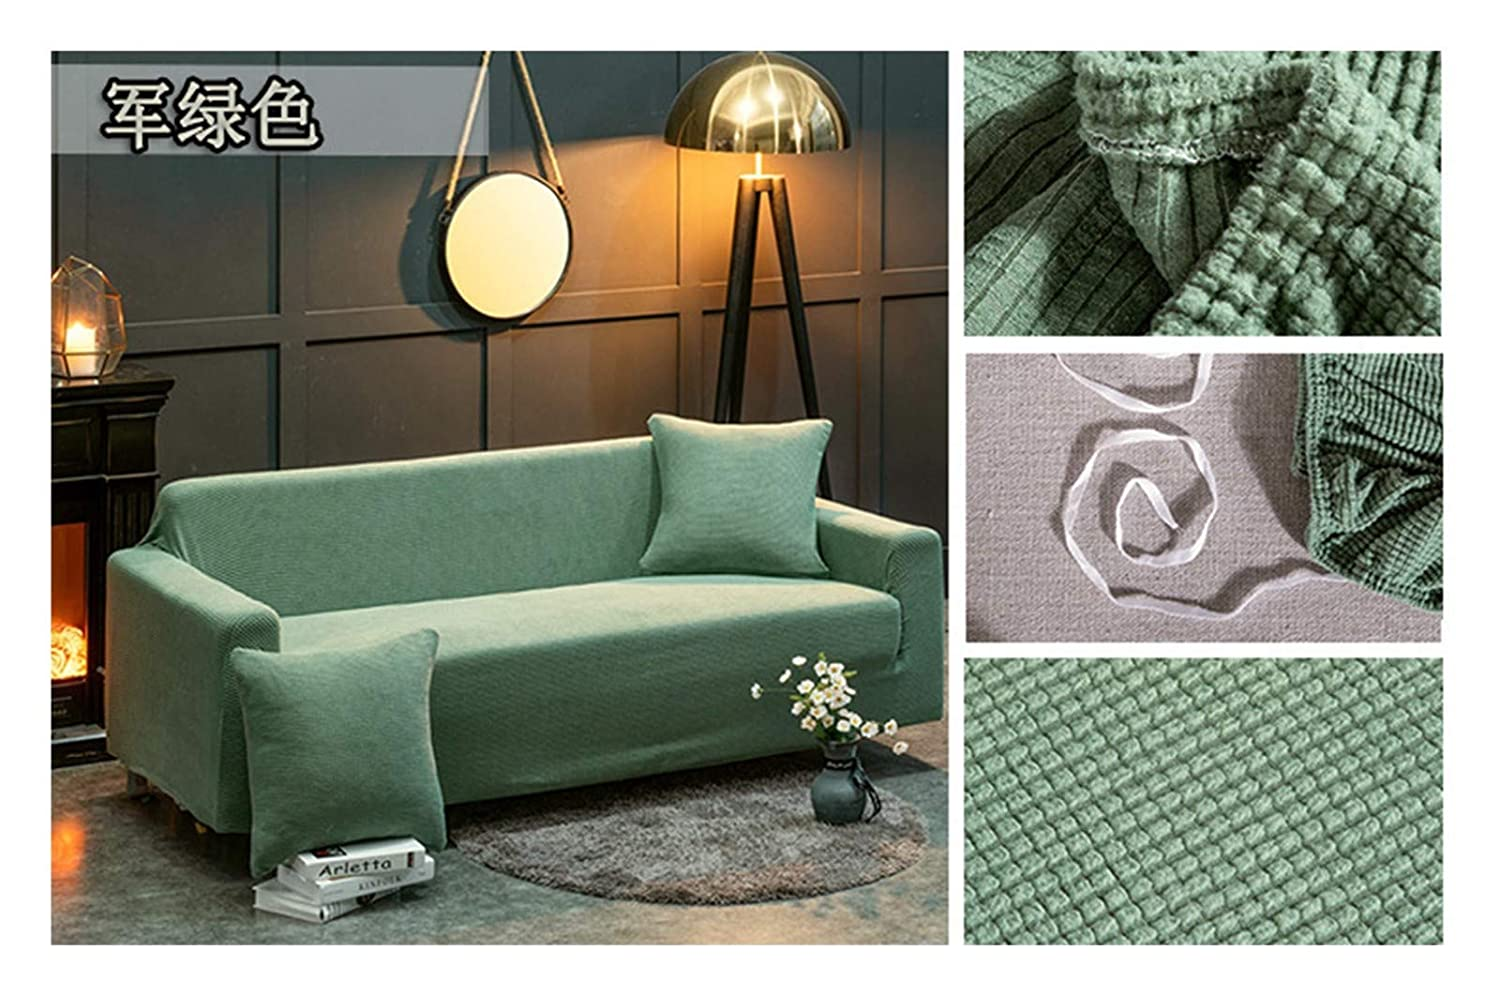 3seat VGUYFUYH Military Green Slip-Proof Sofa Cover Polyester Full Package Elasticity Home Universal Sofa Cover Simple Fashion One Piece Durable Dust-Proof Pet Dog Predective Cover,3Seat